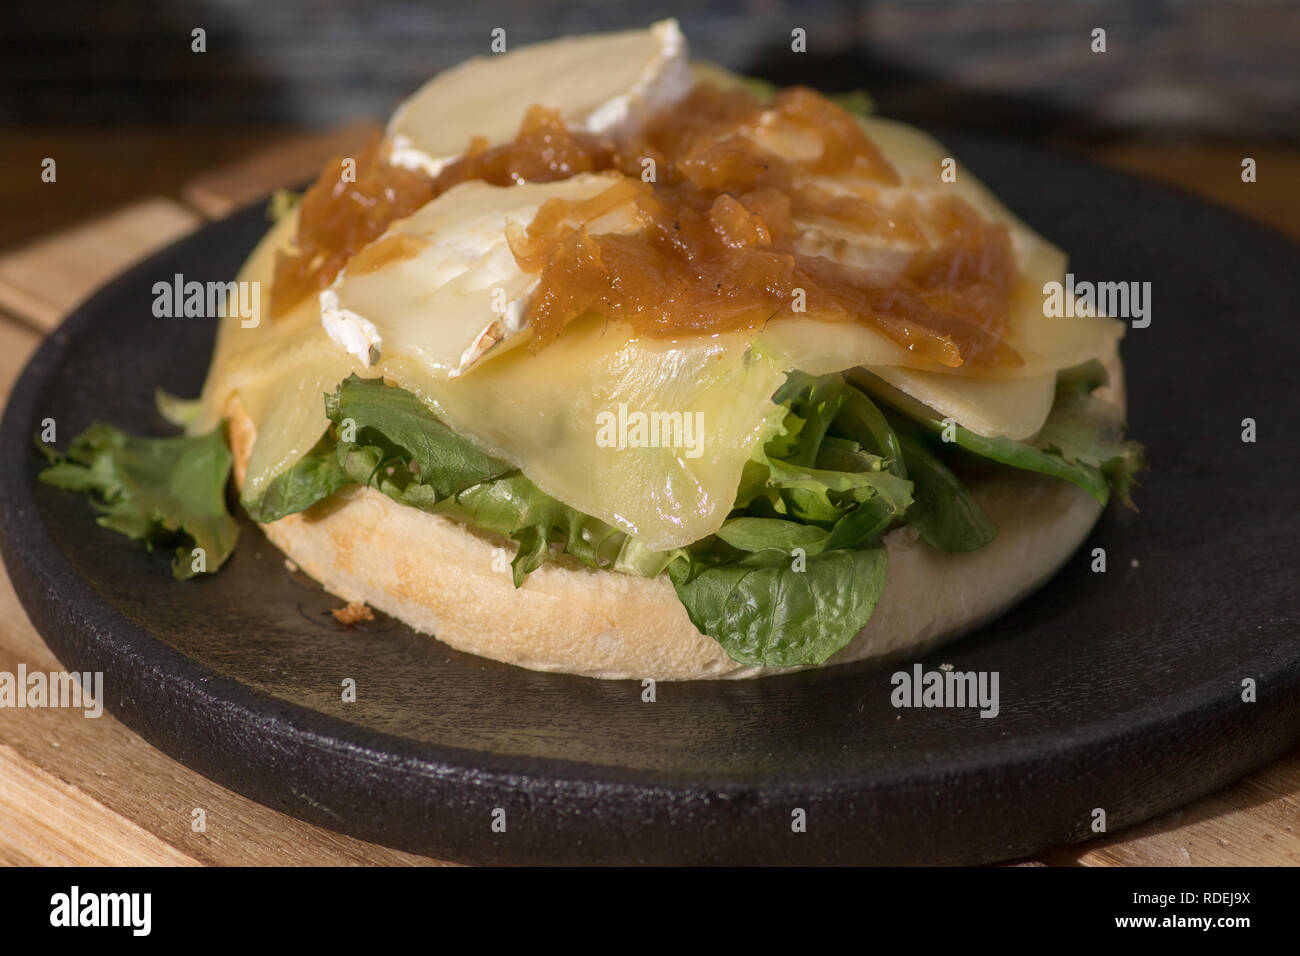 vegan hamburger with cheese and ketchup on black wooden plate Stock Photo